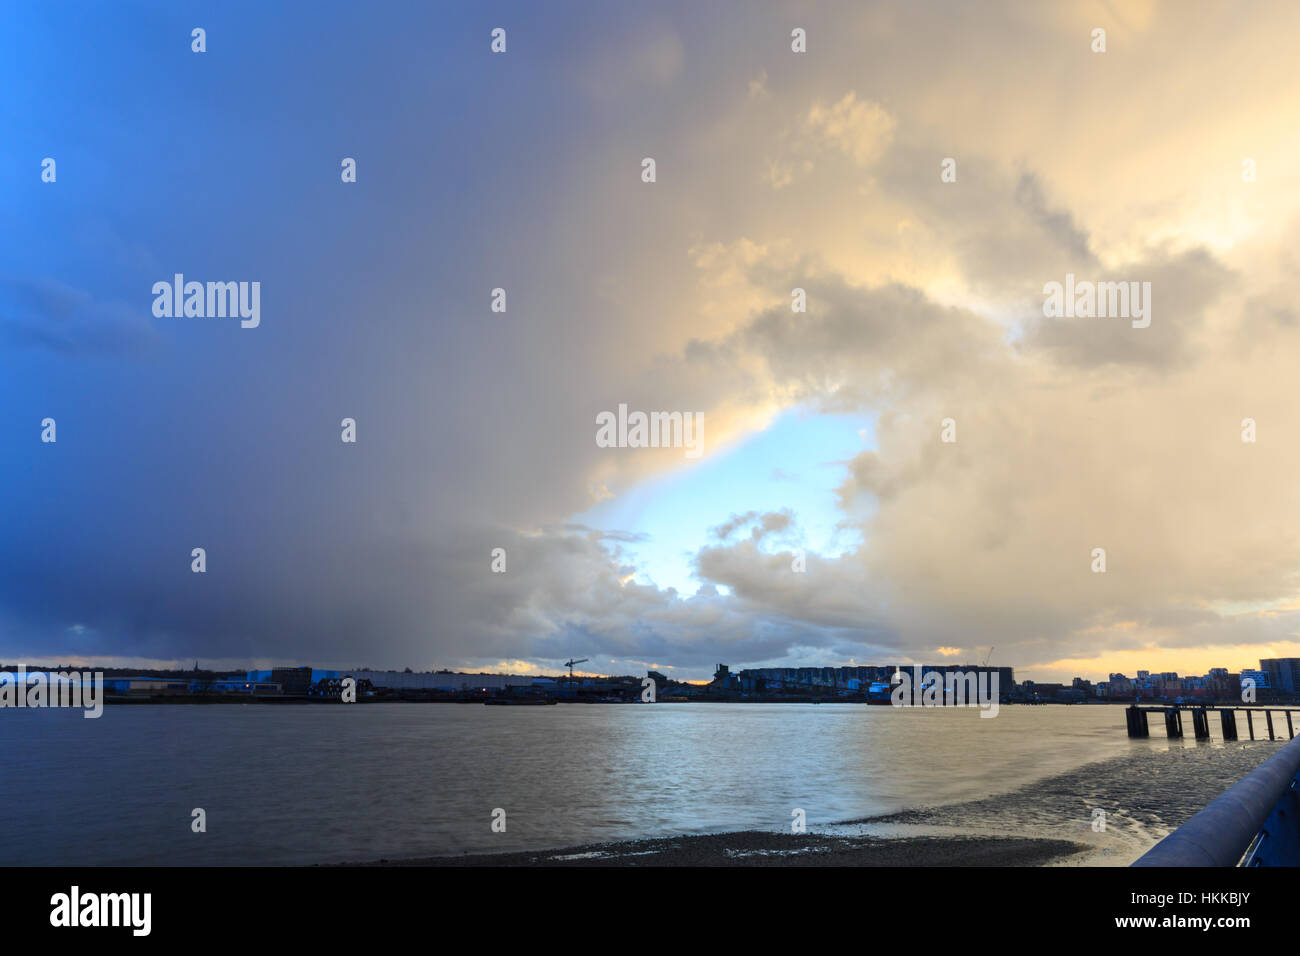 London, UK, 28th Jan 2017. A day of very changeable weather ends with dramatic clouds at sunset over the River Thames - Stock Image